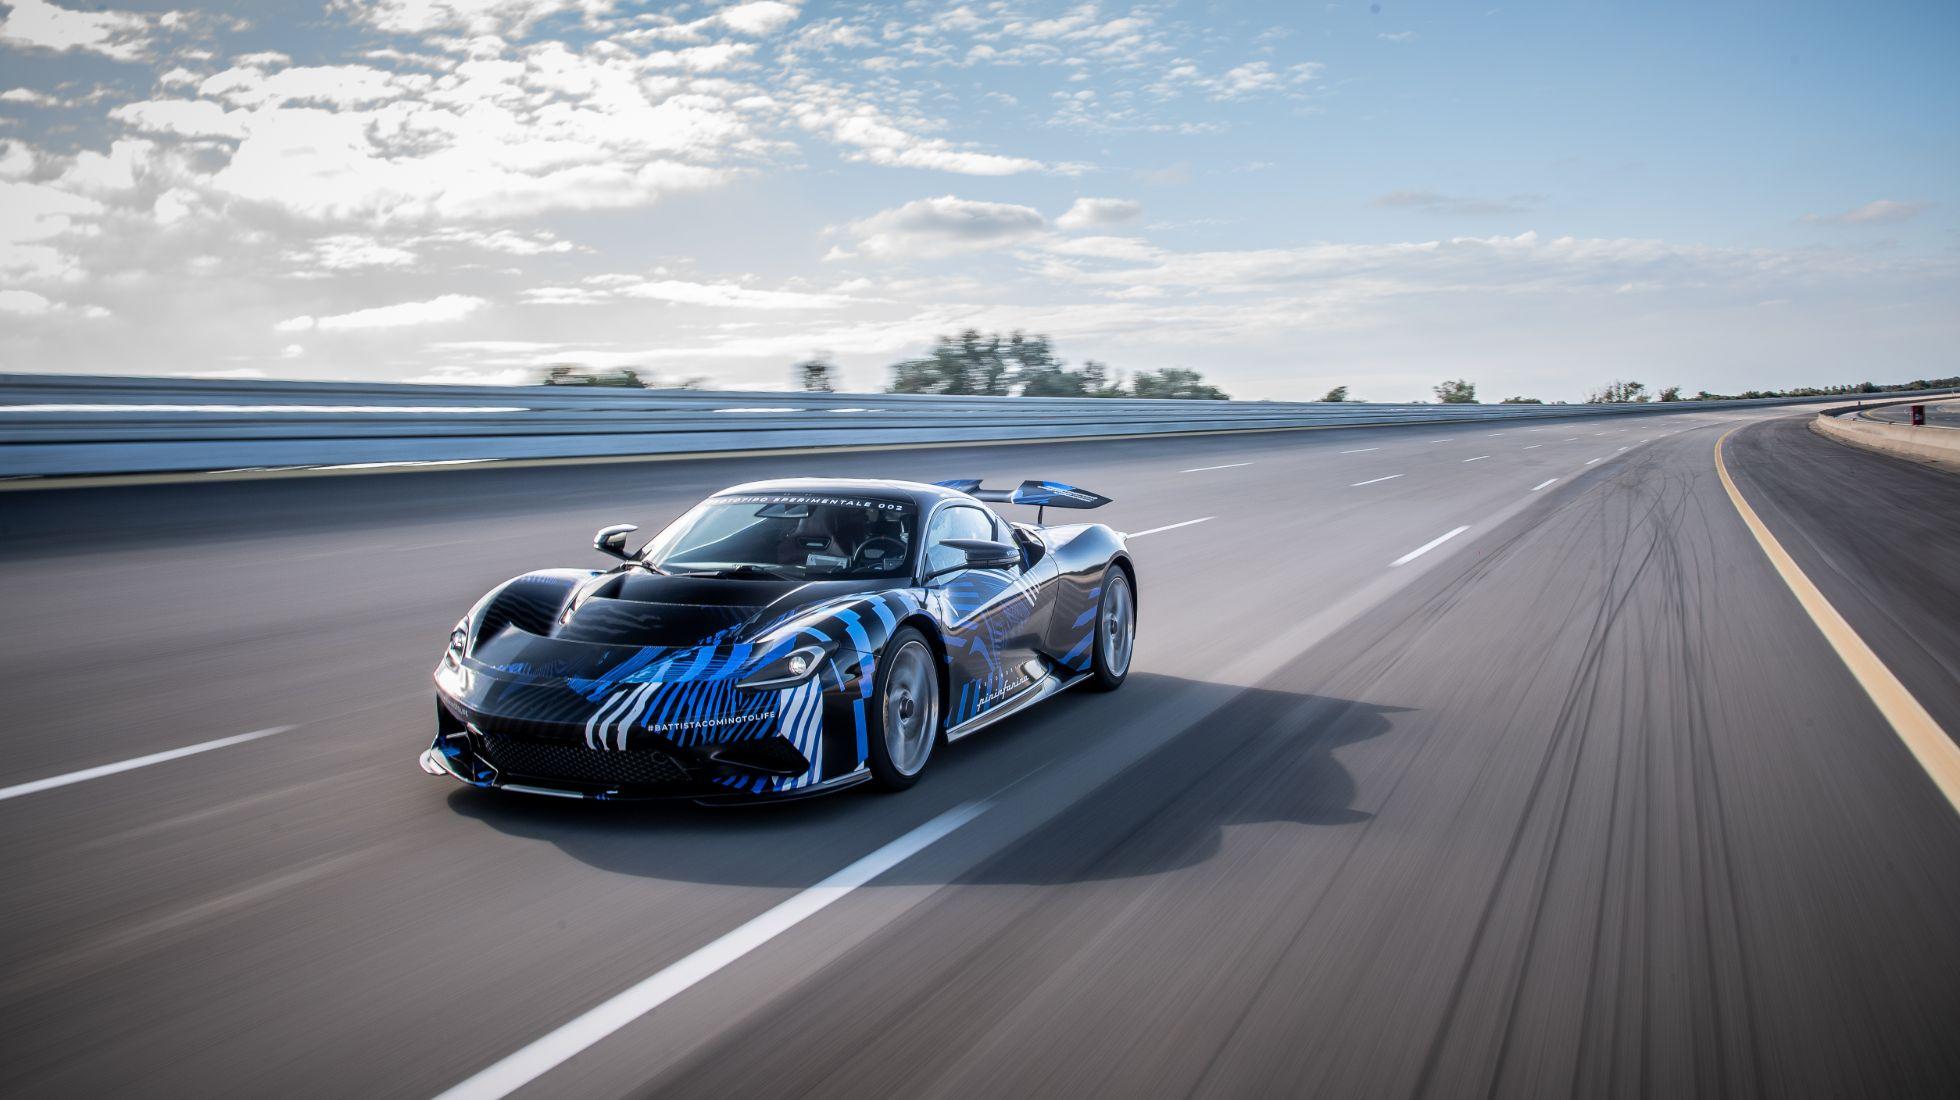 Heidfeld puts the prototype Automobili Pininfarina Battista hyper GT through its paces